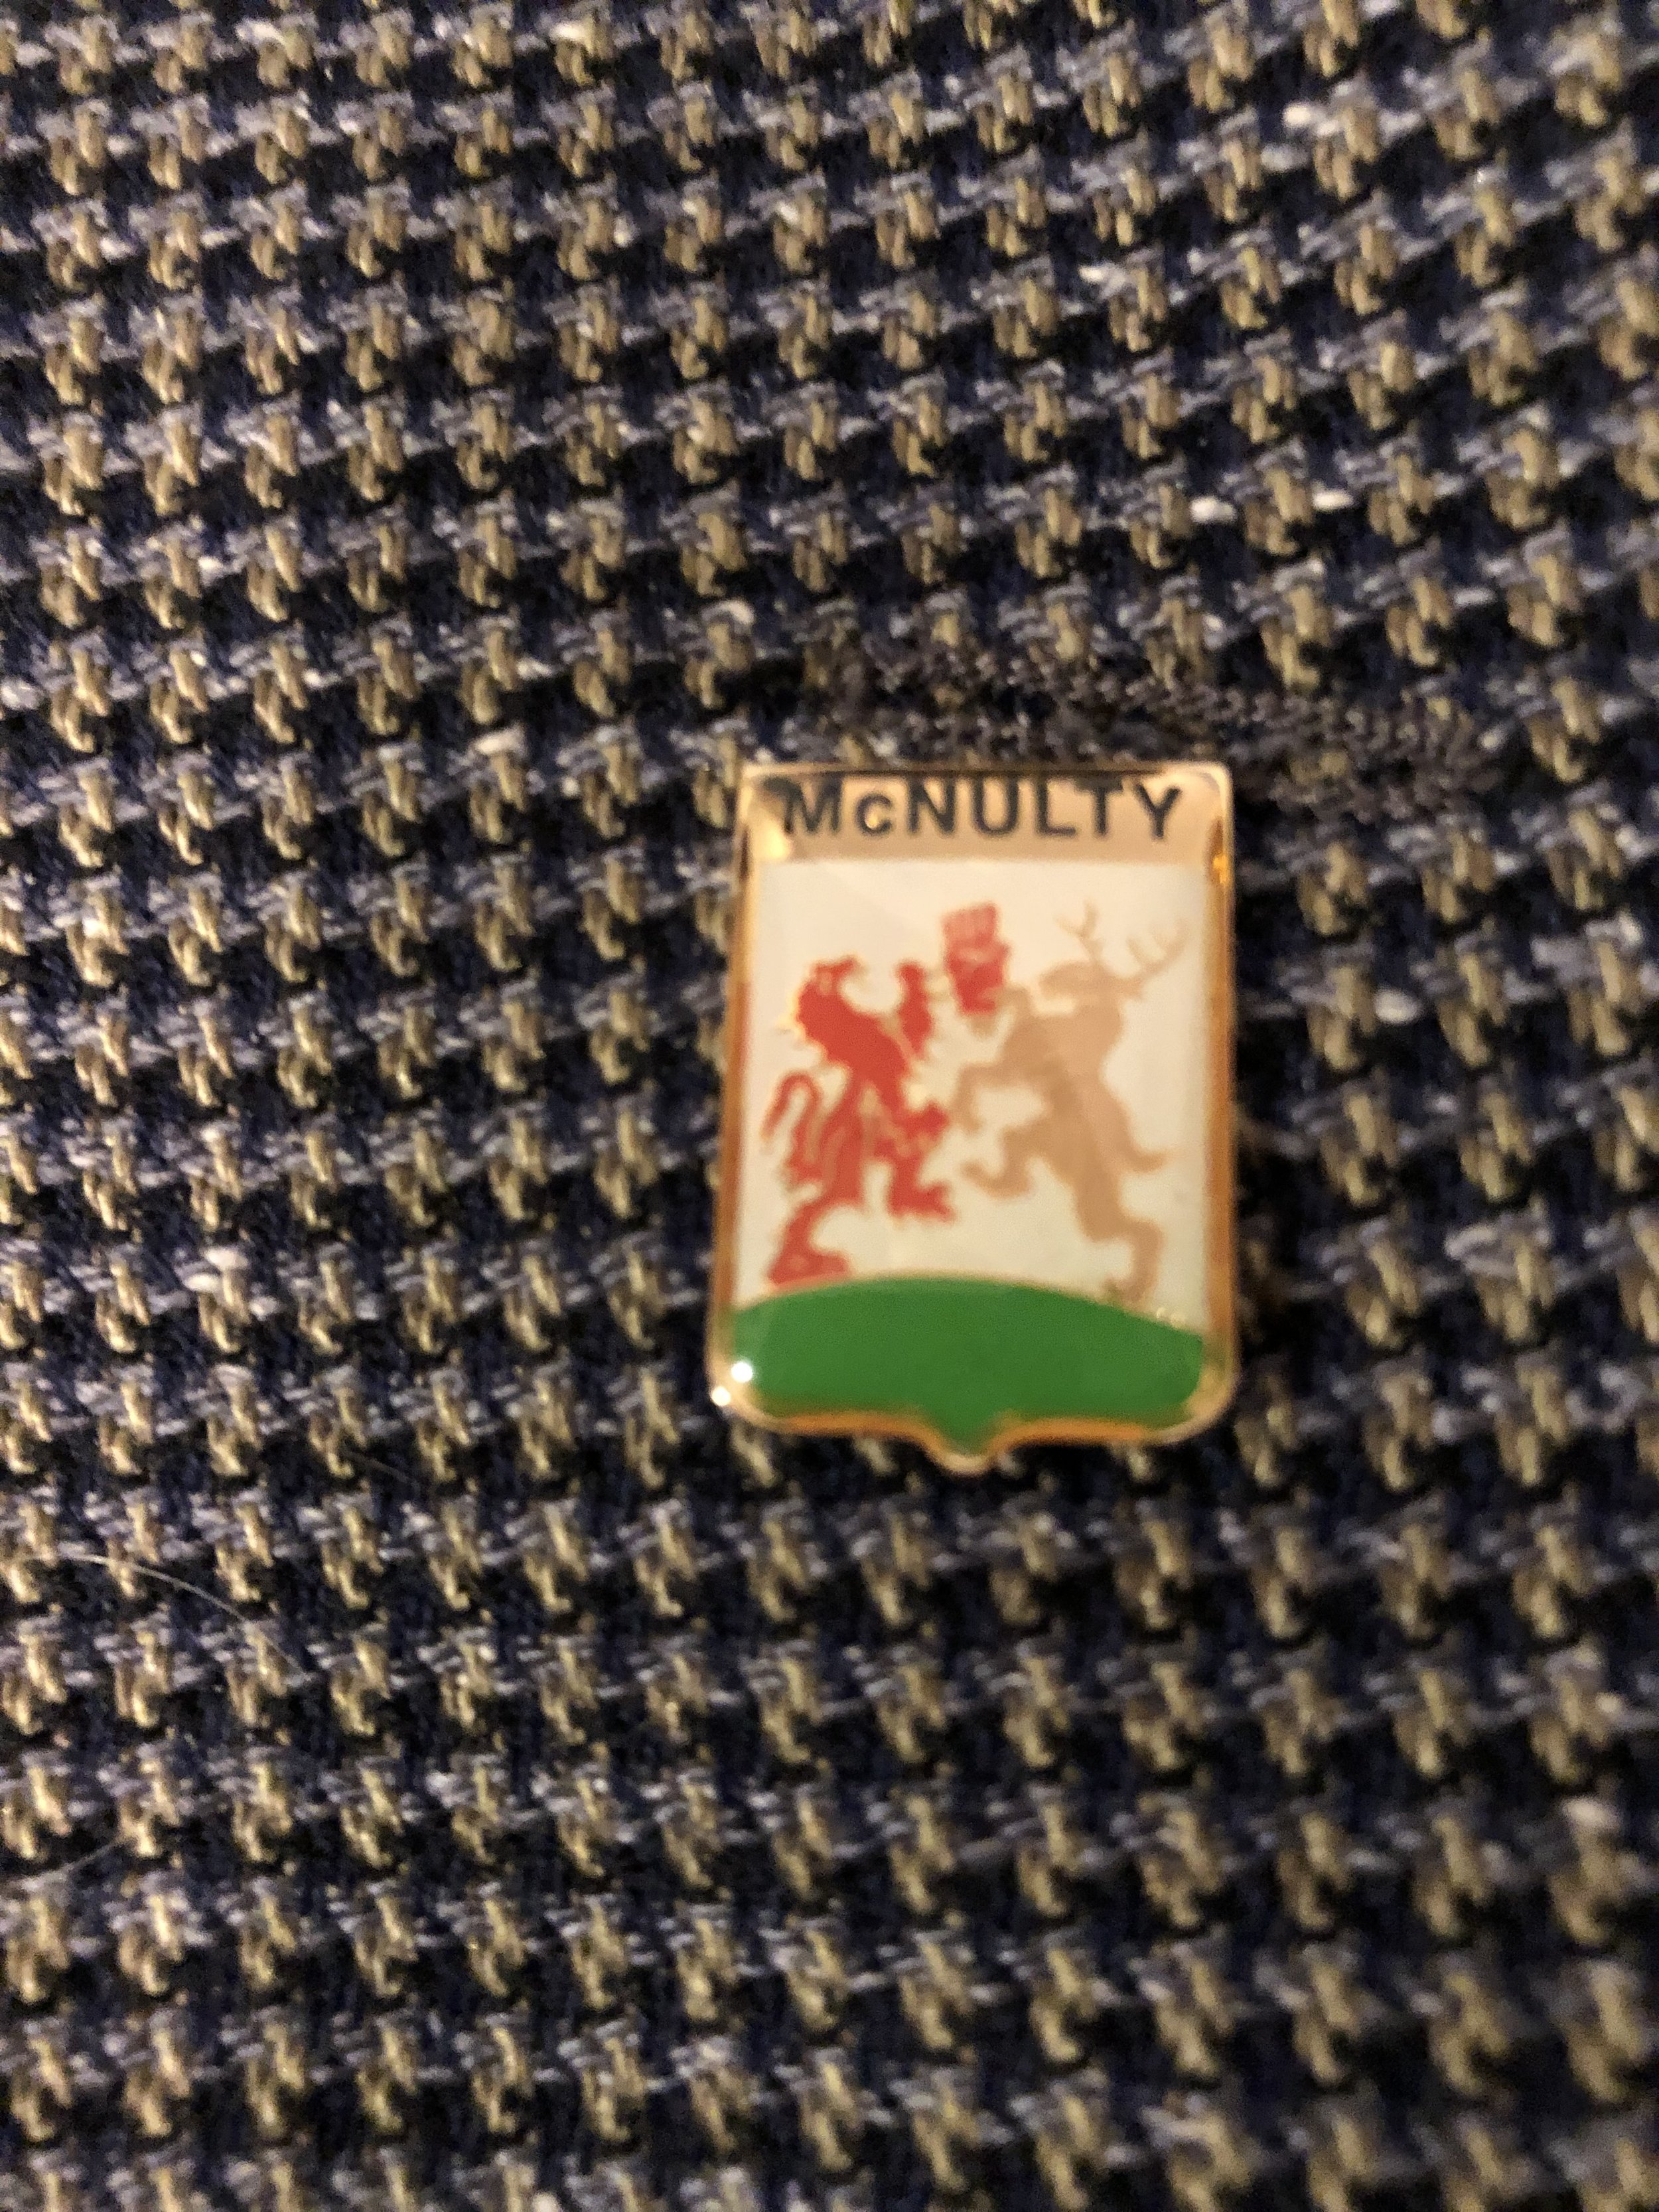 The McNulty Pin